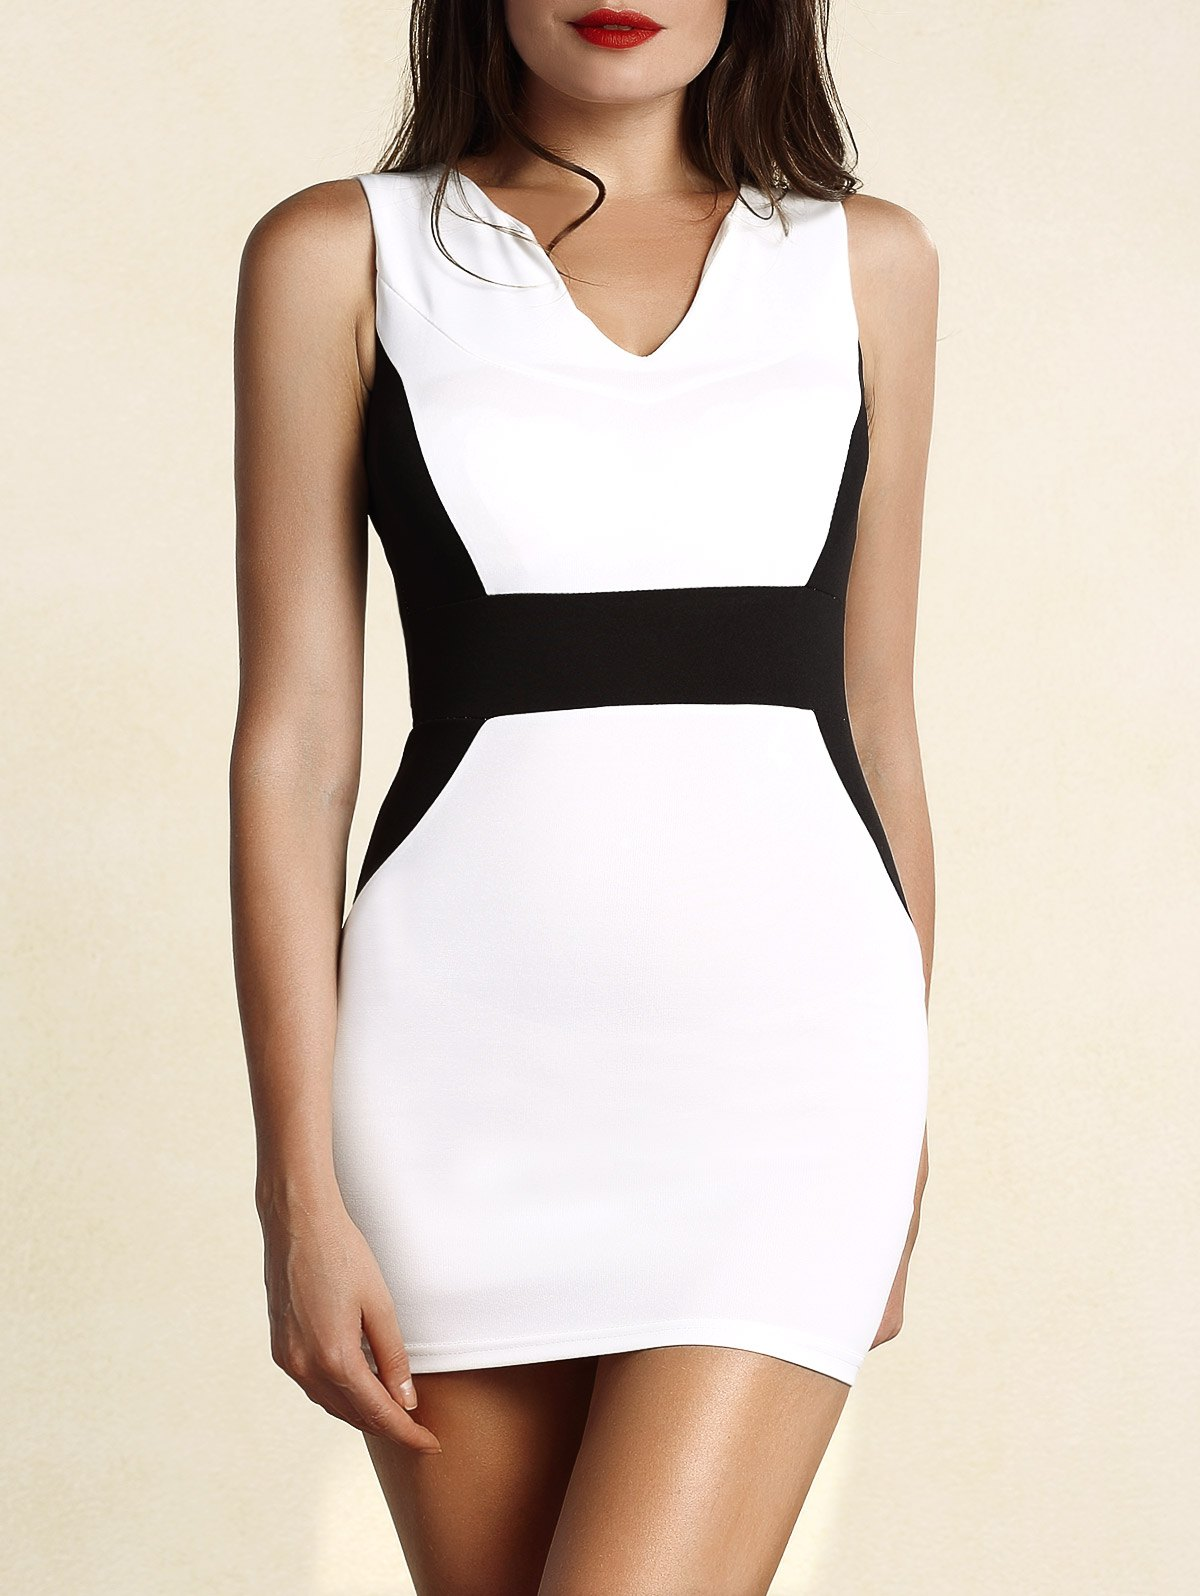 Sophisticated Round Collar Sleeveless Color Block Women's Dress